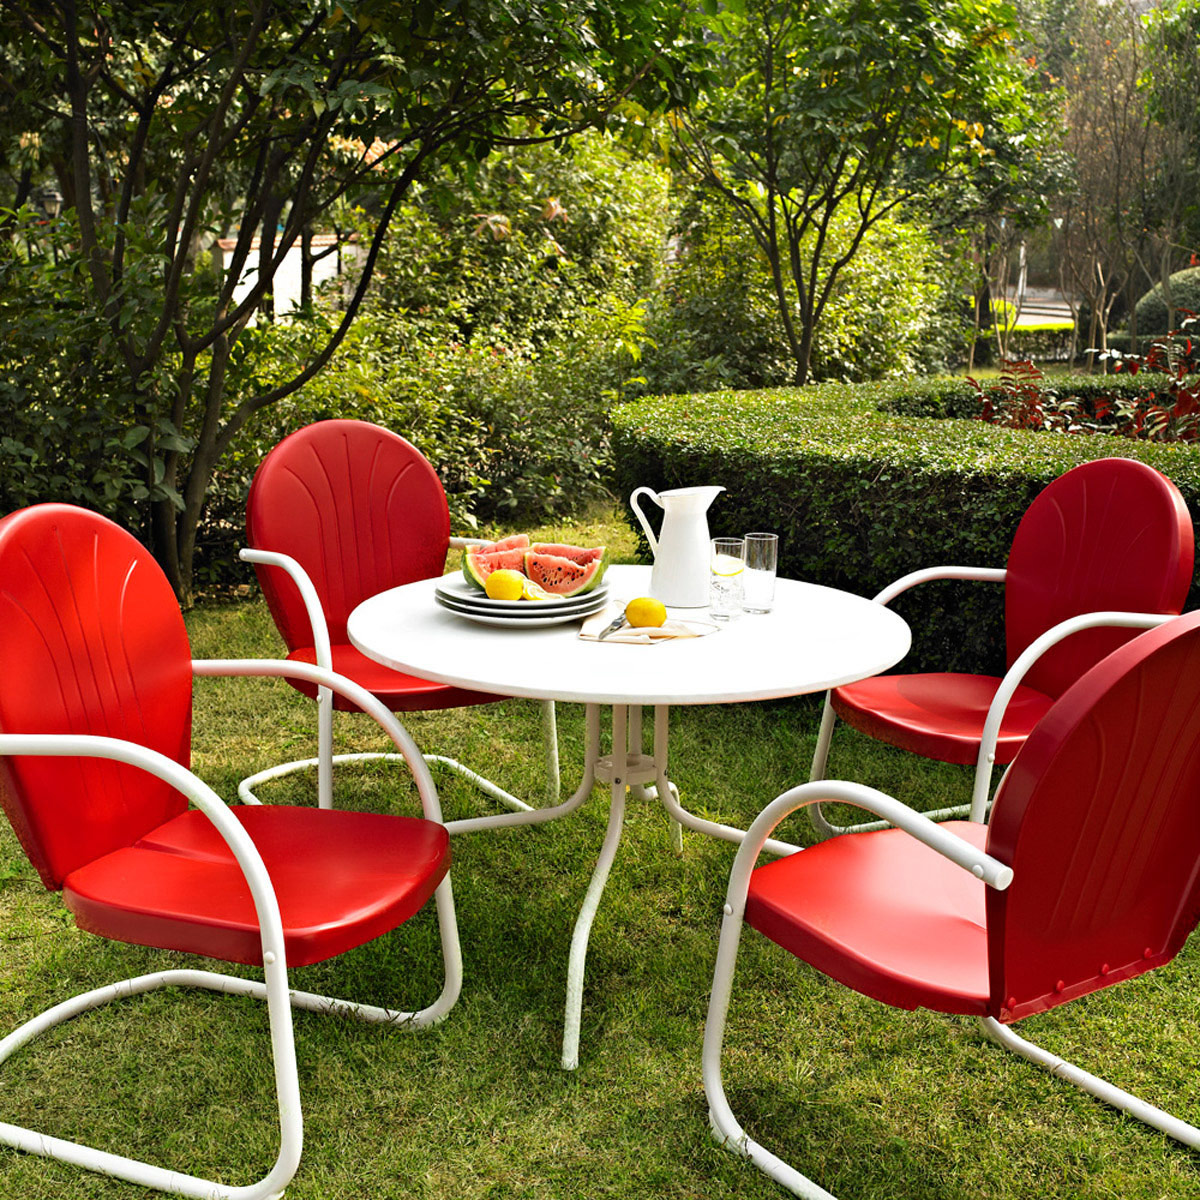 Crosley Griffith Outdoor Metal Five Piece Set 40 Patio Dining Table And 4 Chairs In White Red